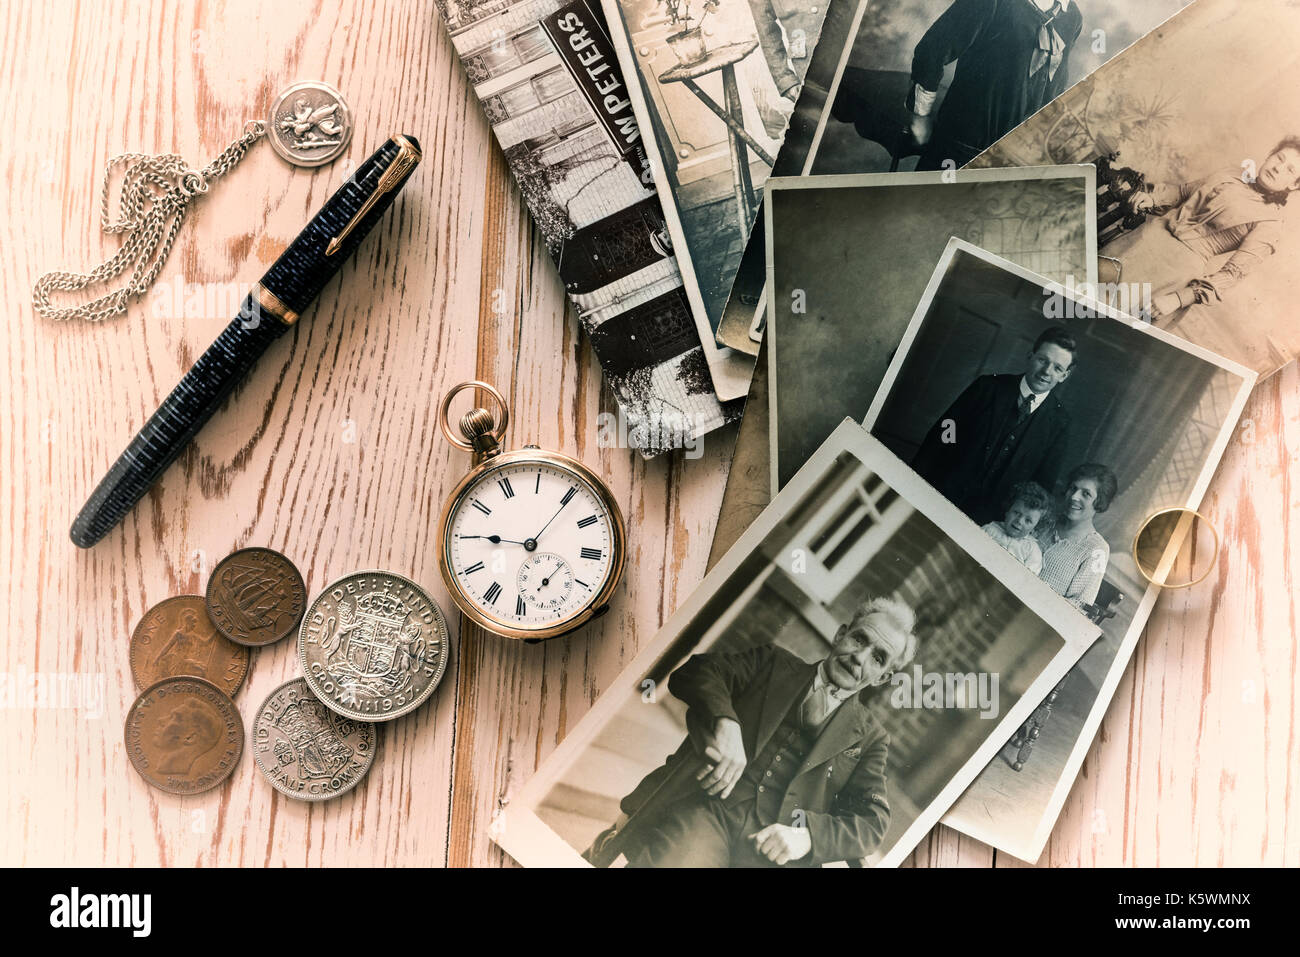 Old family photographs and some collectable items. Nostalgia, memories. - Stock Image